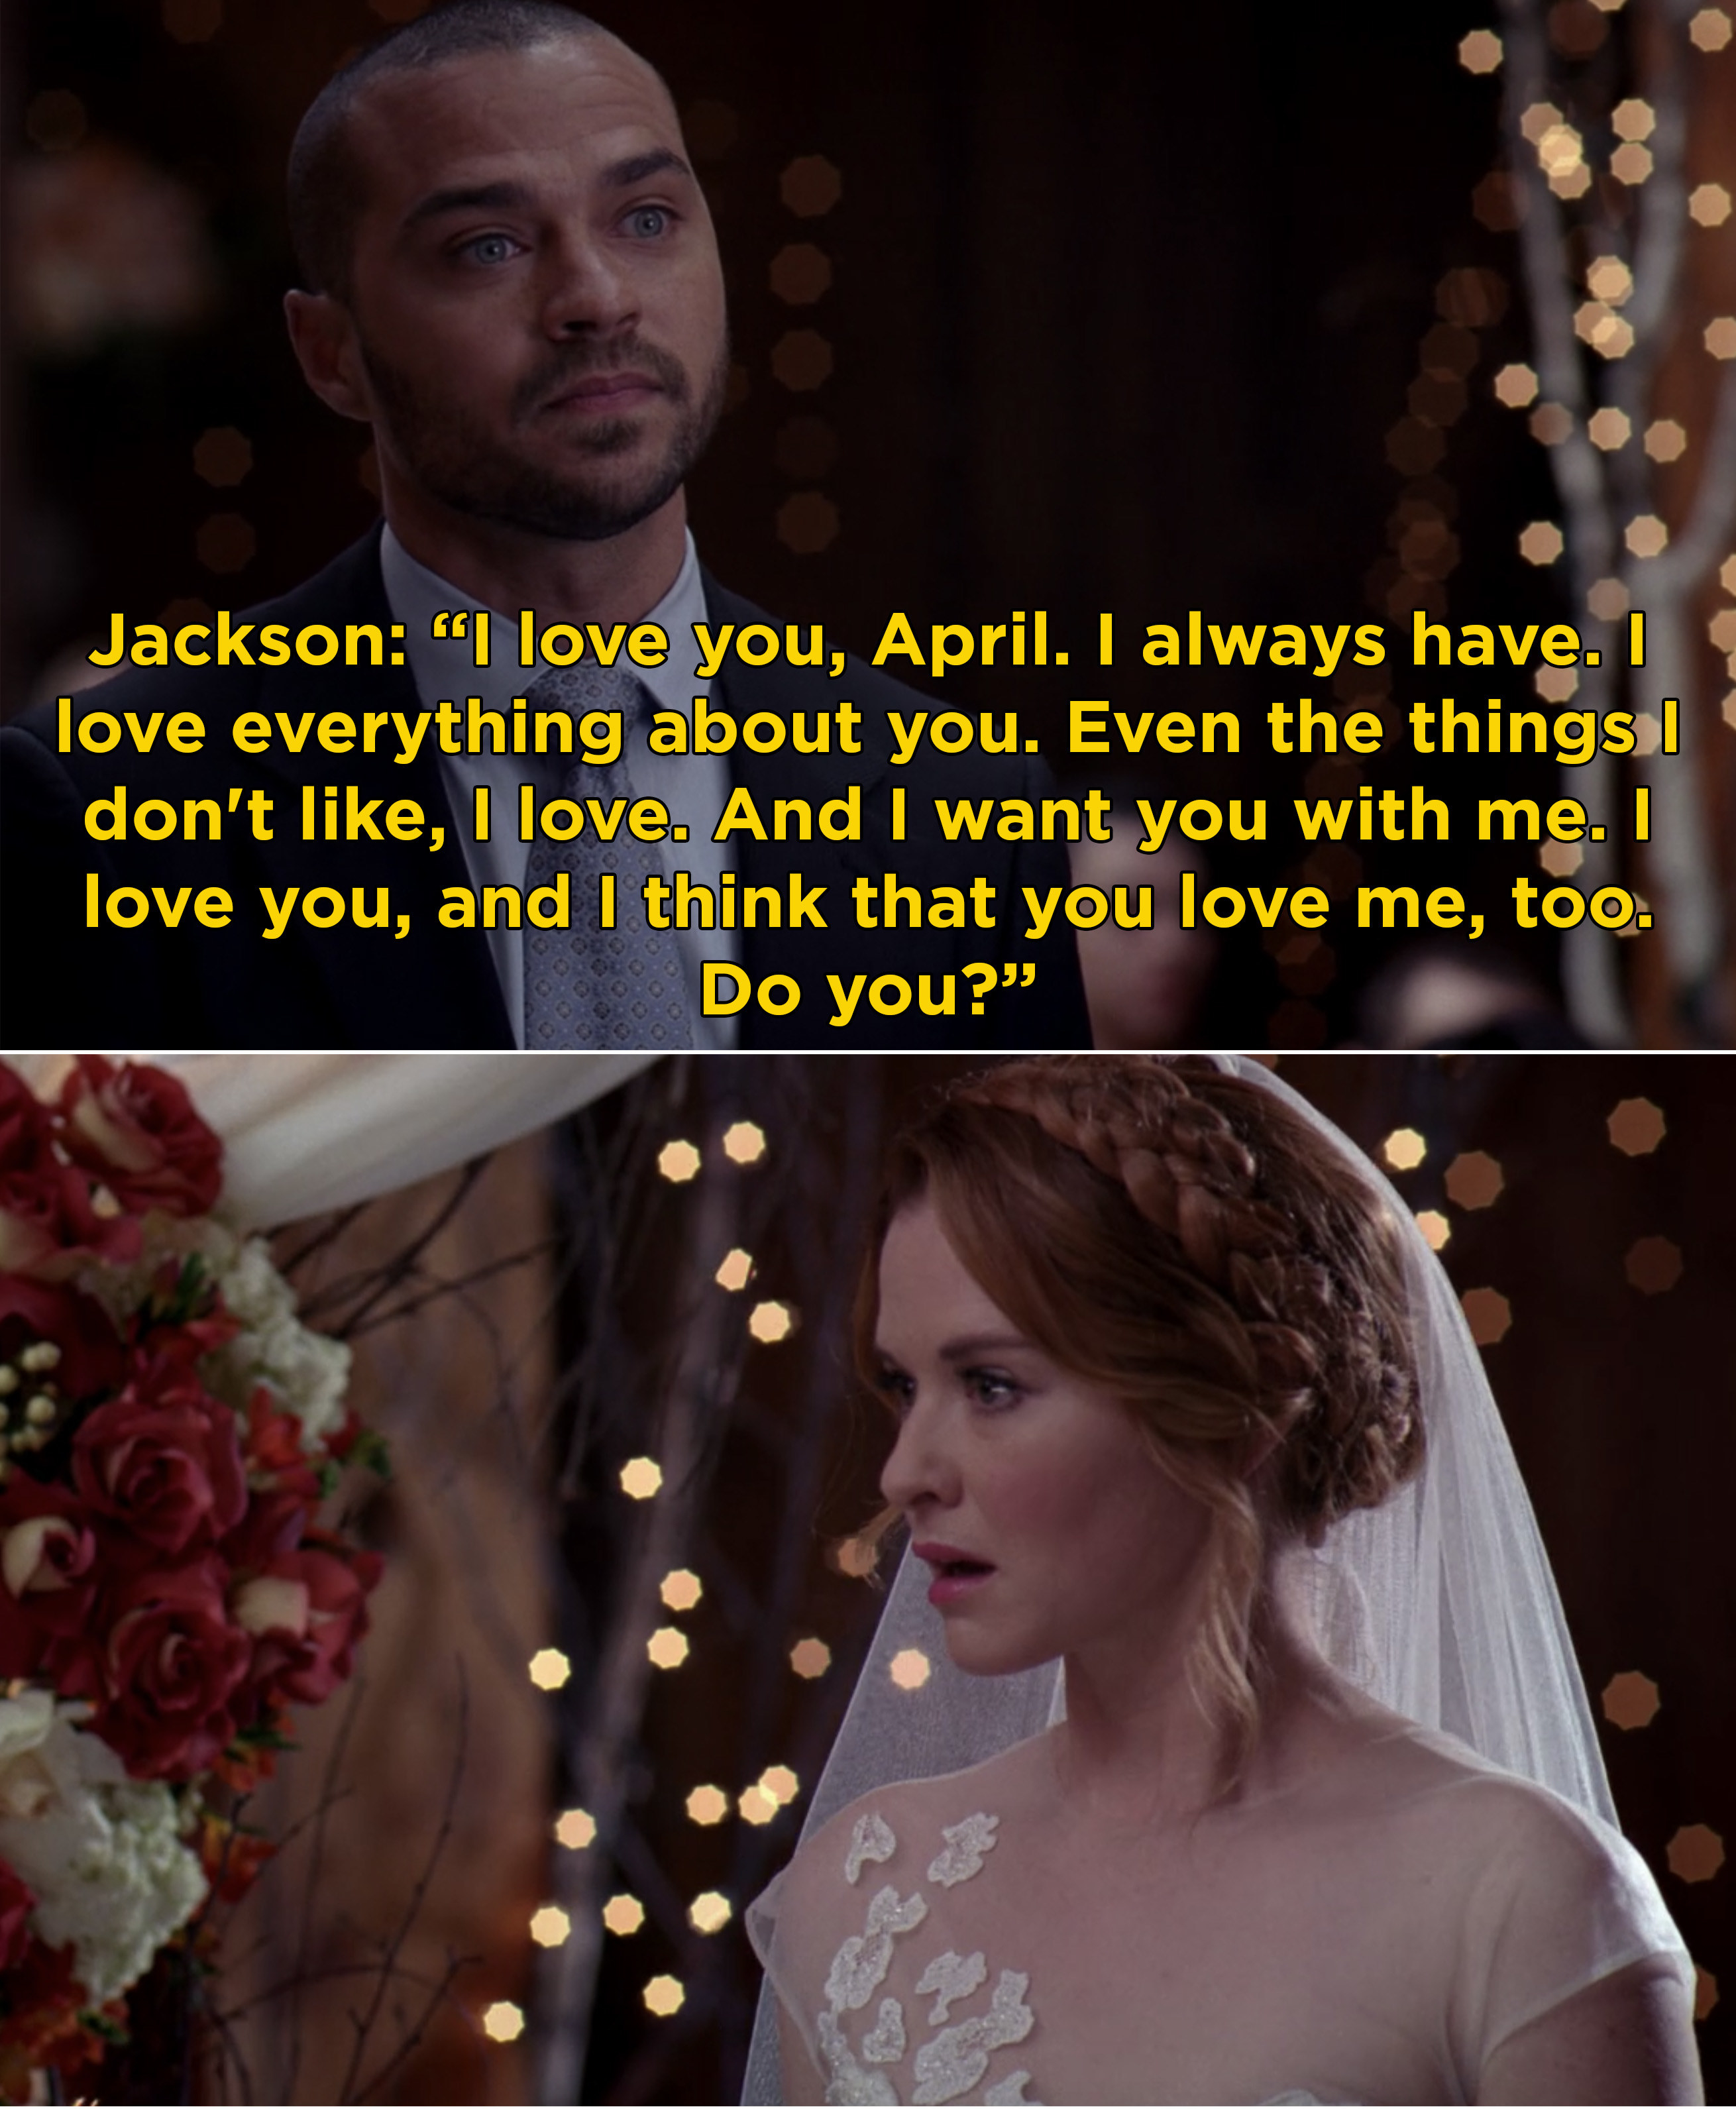 Jackson telling April that he loves her and asking if she feels the same way